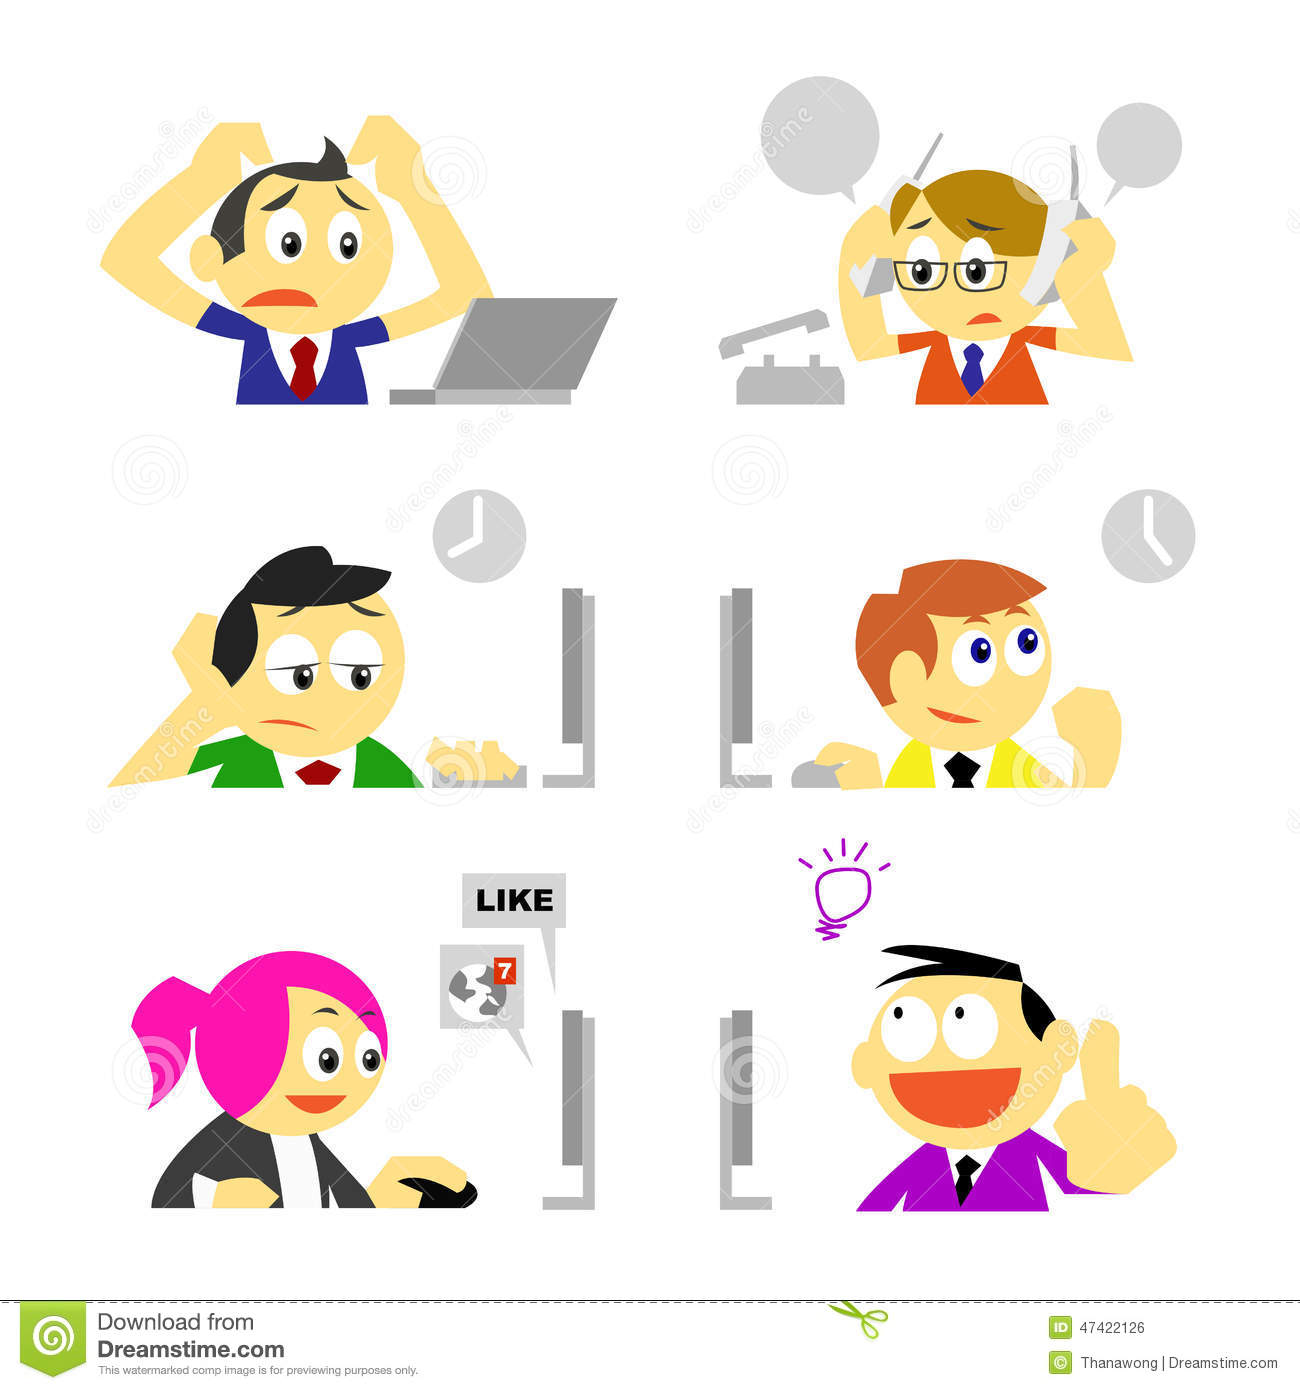 Business people and various behavior in office